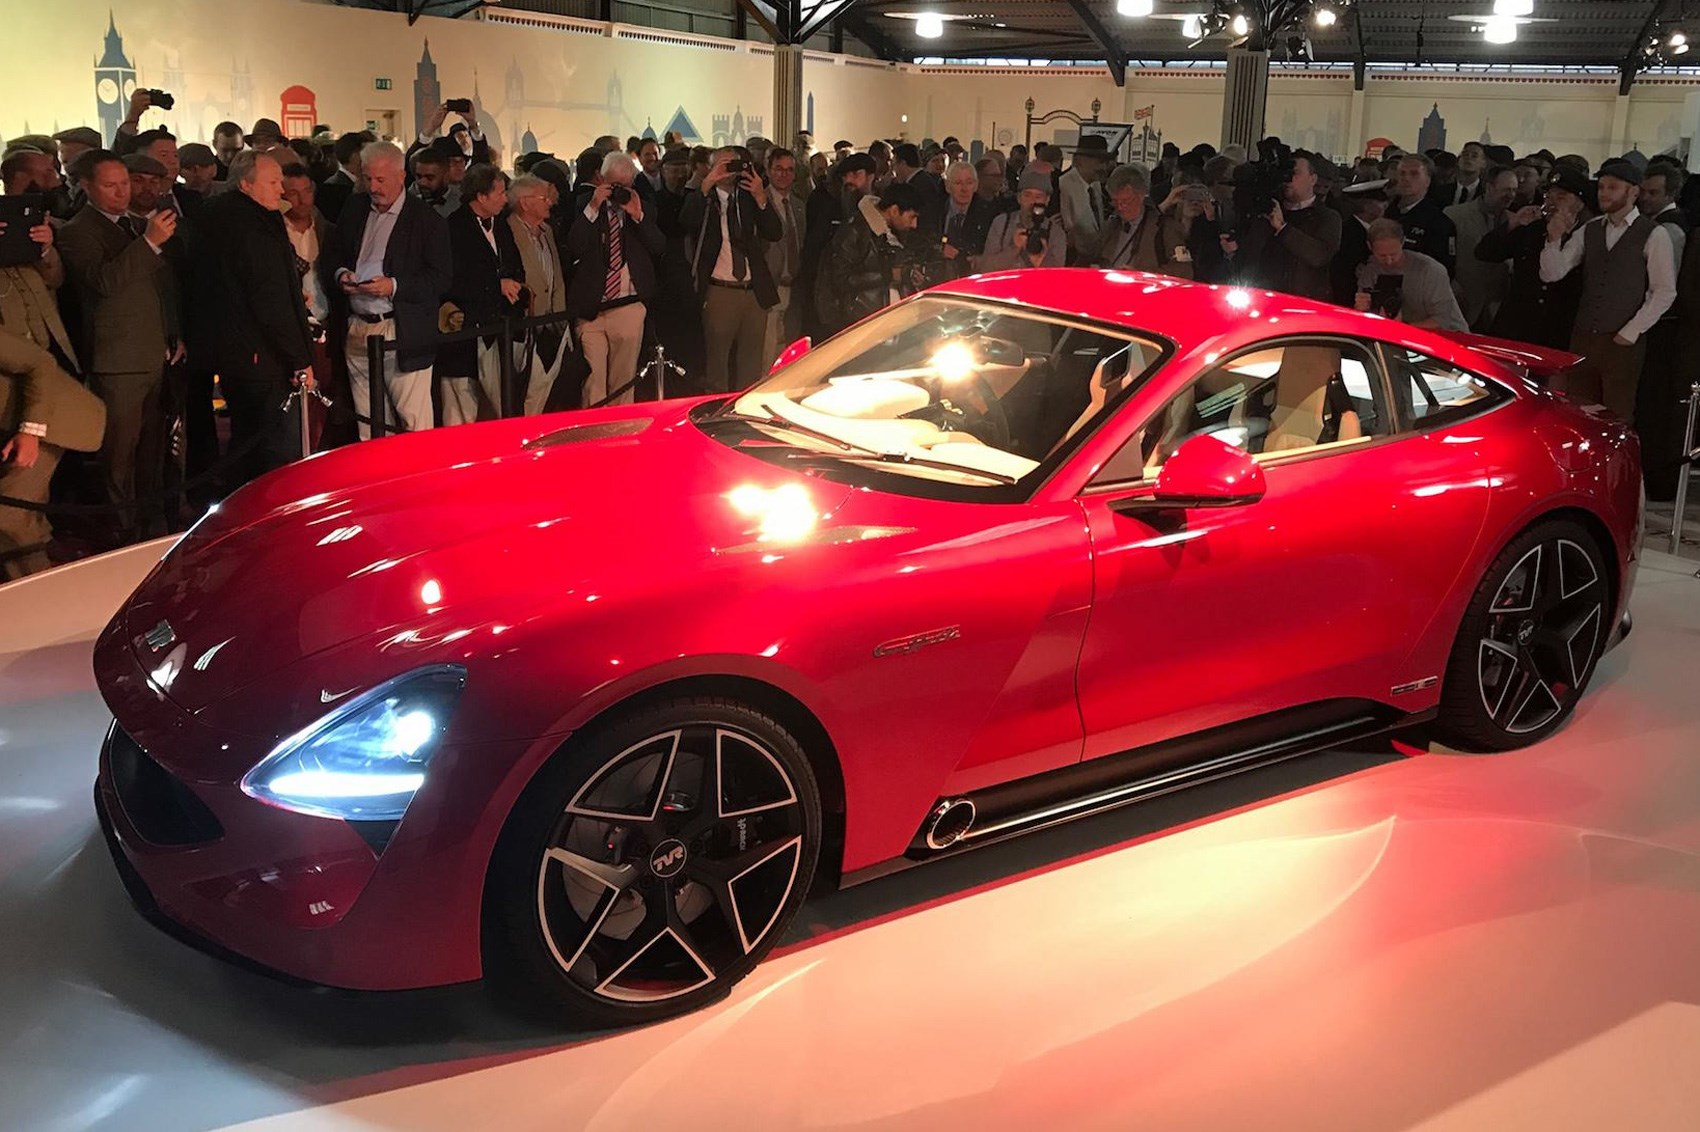 new 2018 tvr sports car news photos specs prices by. Black Bedroom Furniture Sets. Home Design Ideas